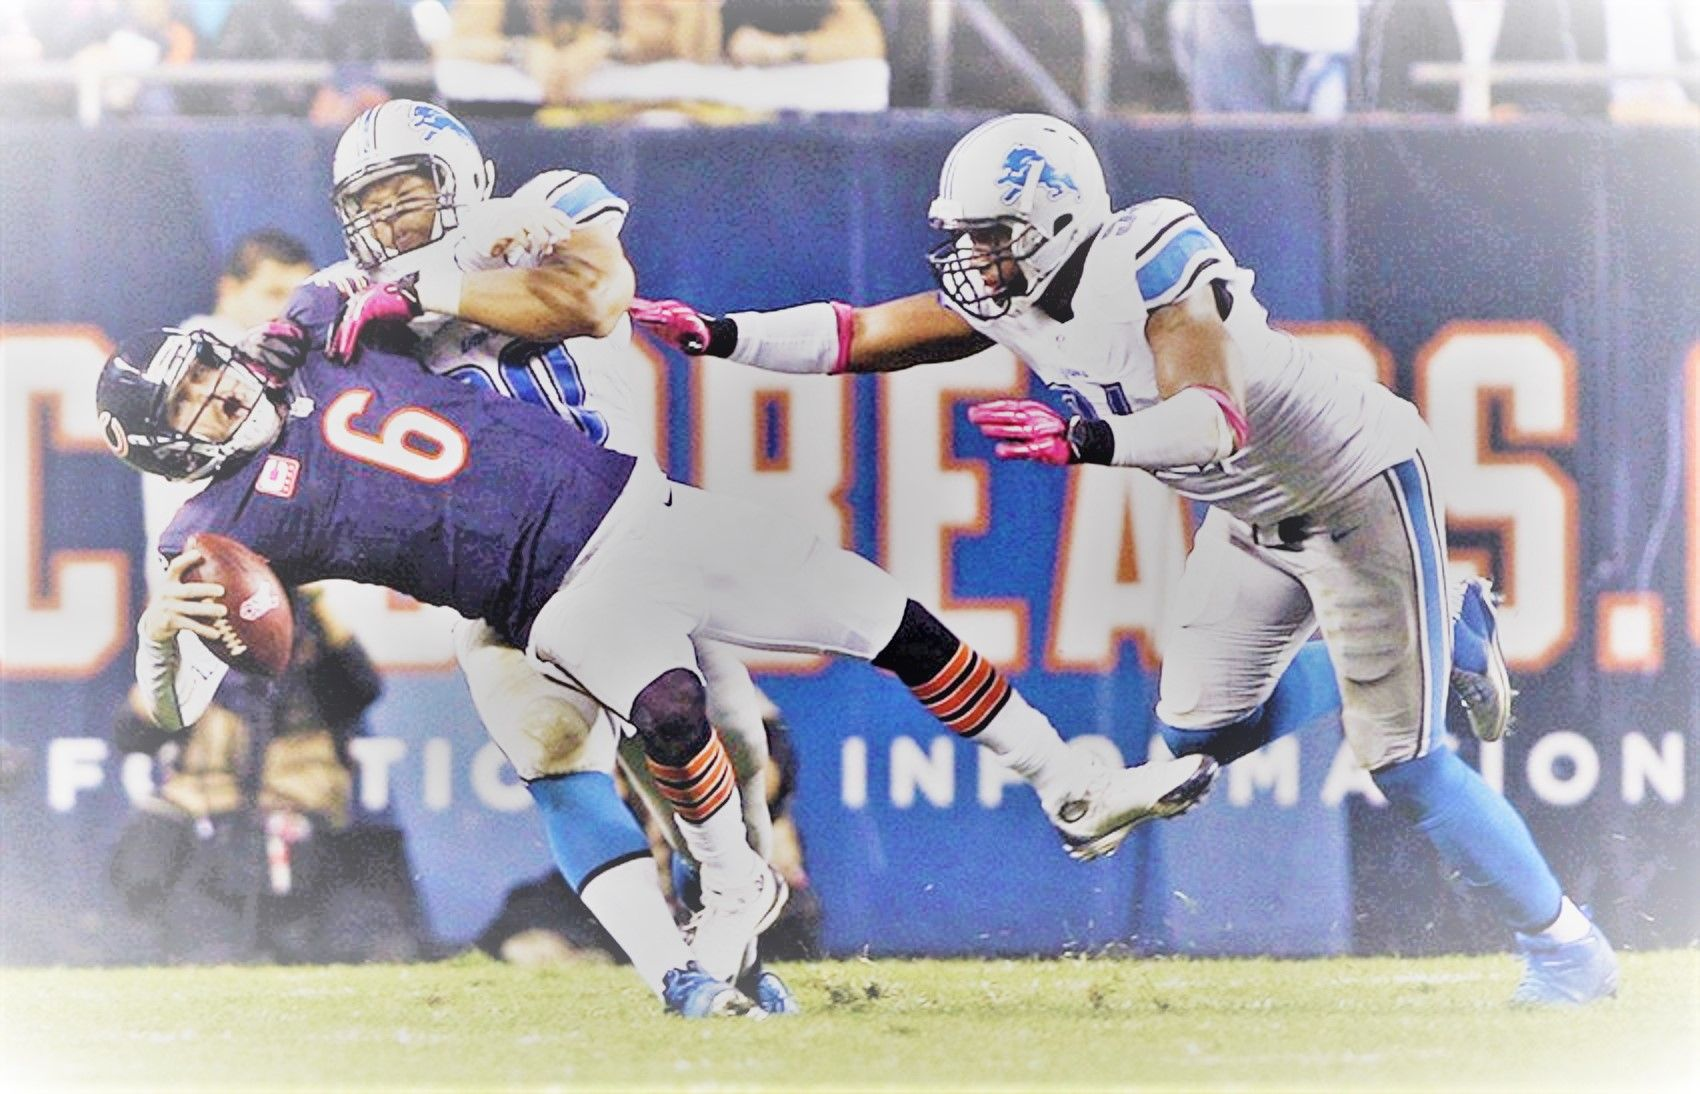 Chicago Bears Vs Detroit Lions Live Streaming Watch Thursday Football Online Game Updates Schedule Detroit